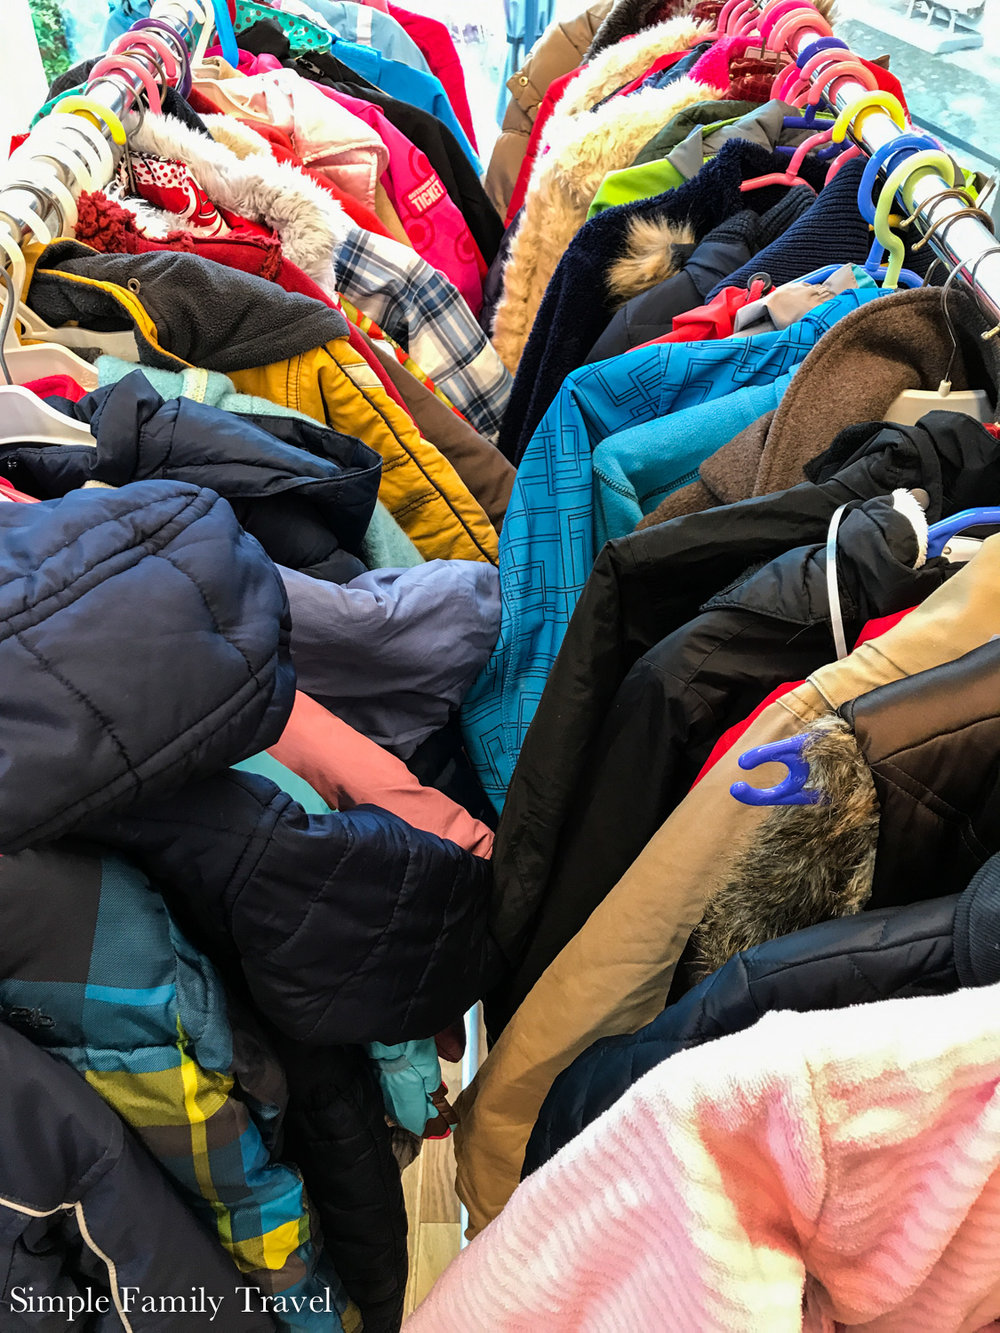 I try to buy second hand when I can, especially kids clothes, they grow so quickly. I also help organise the local second hand kids clothing sale.